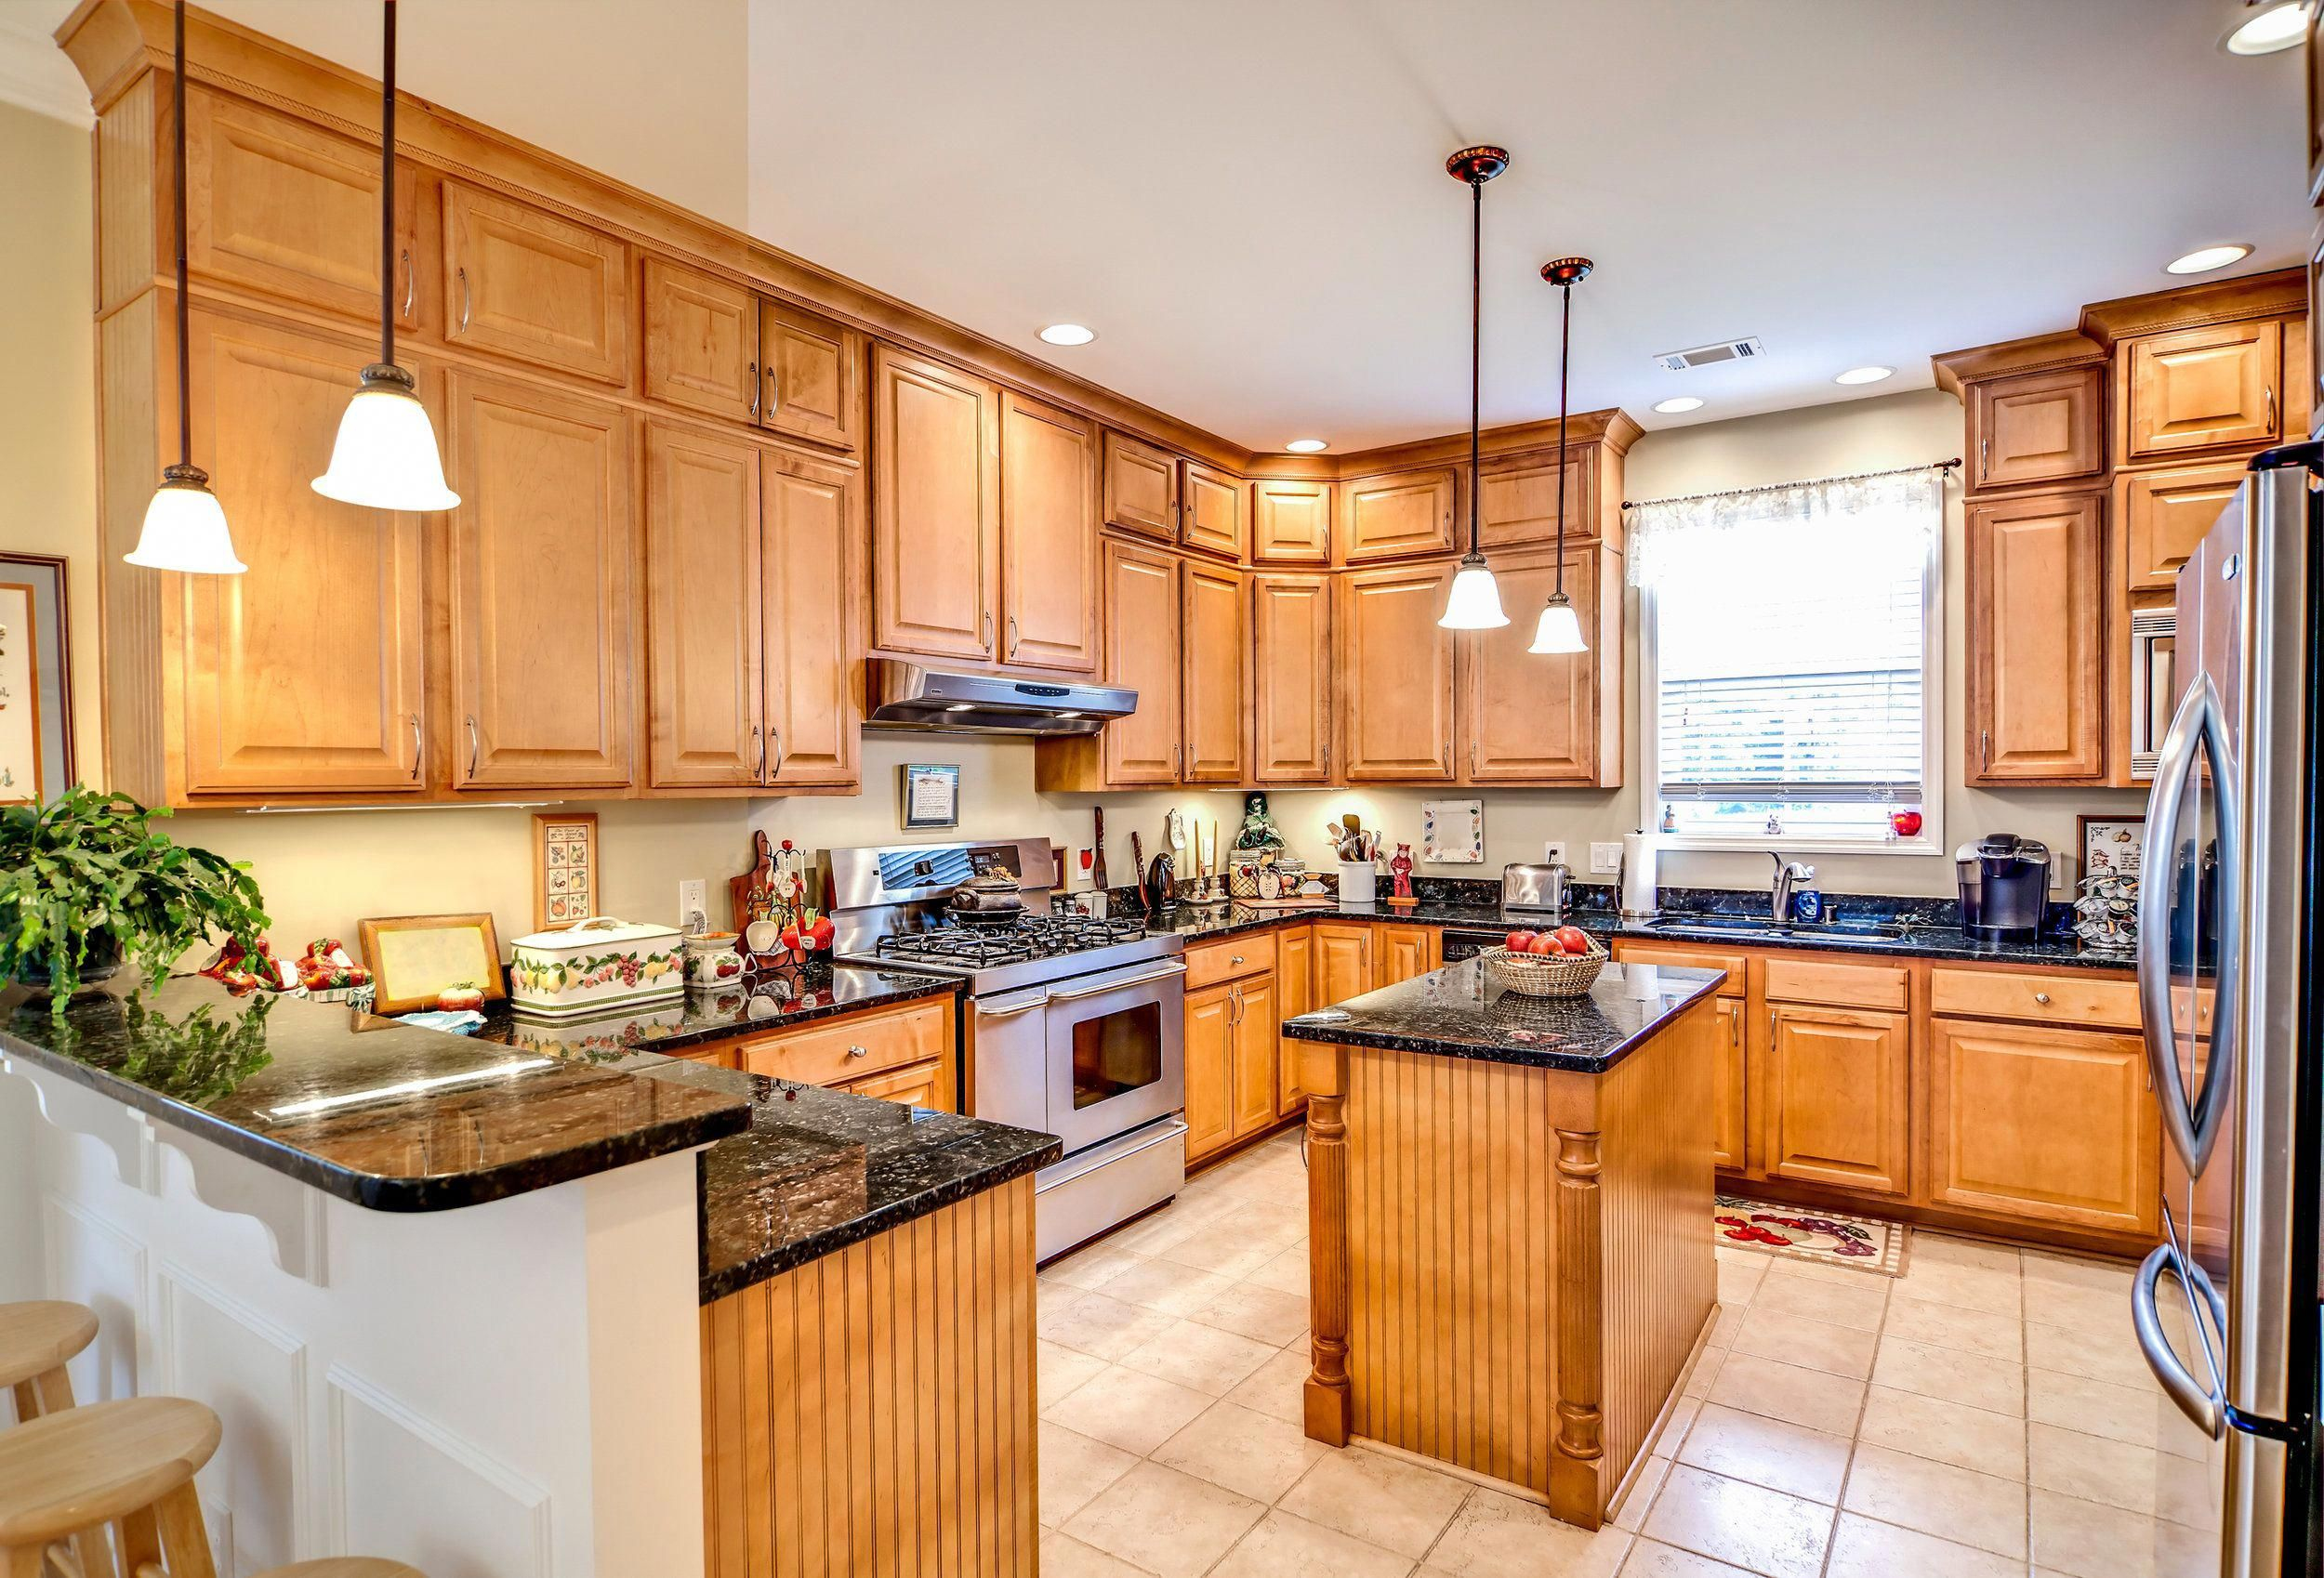 excellent kitchen countertops | Lxm real estate actions & overlays | Outdoor Kitchen ...